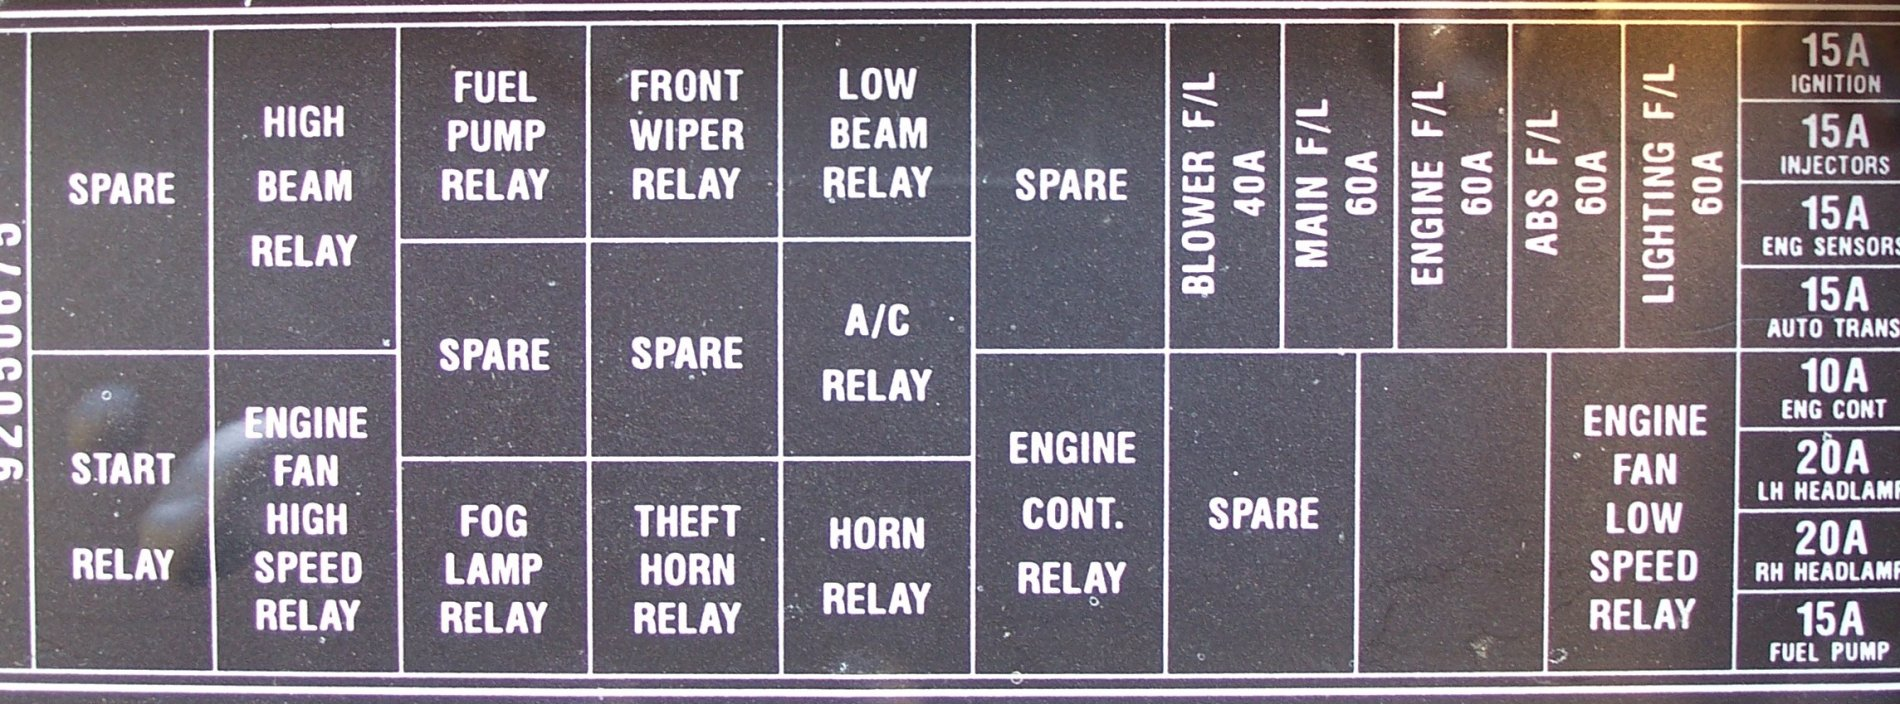 Fuse And Relay Layout Dilema Just Commodores Box Instructions Inside Cover